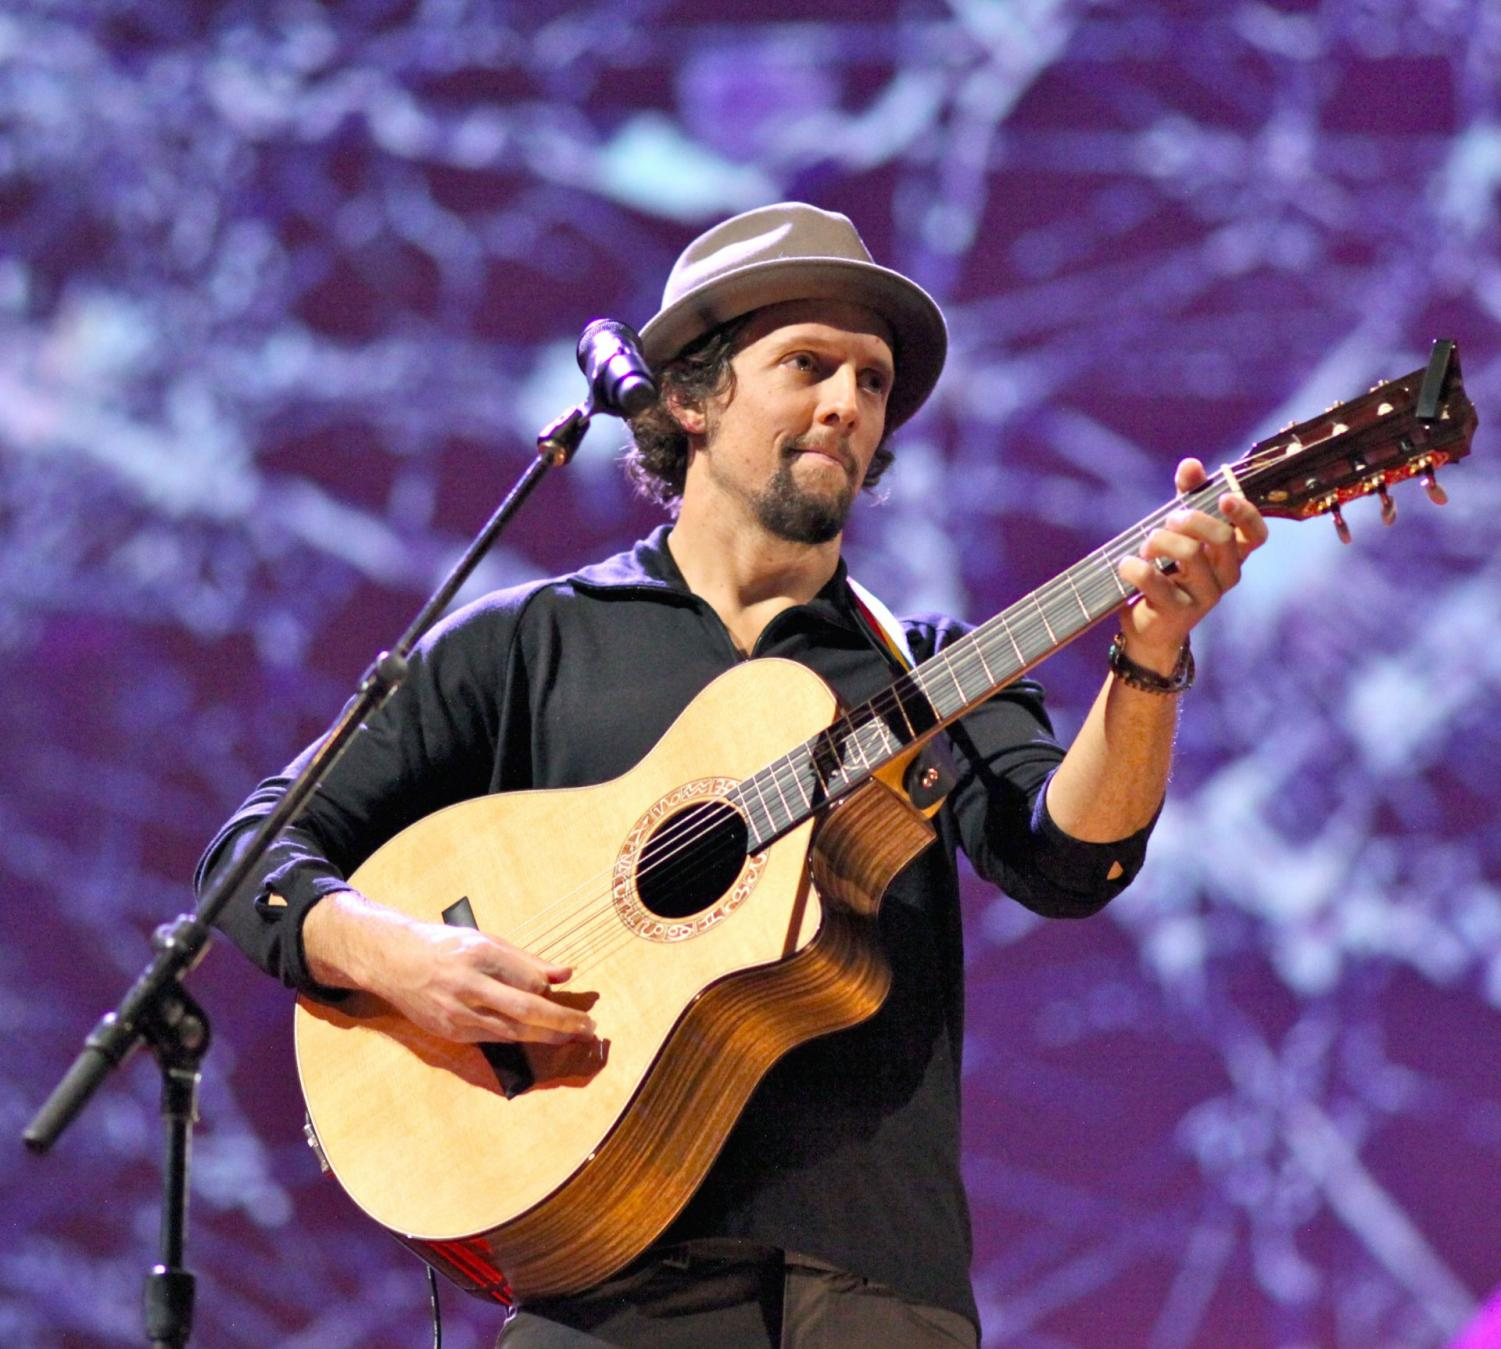 Jason Mraz performs on an acoustic guitar in March 2011.